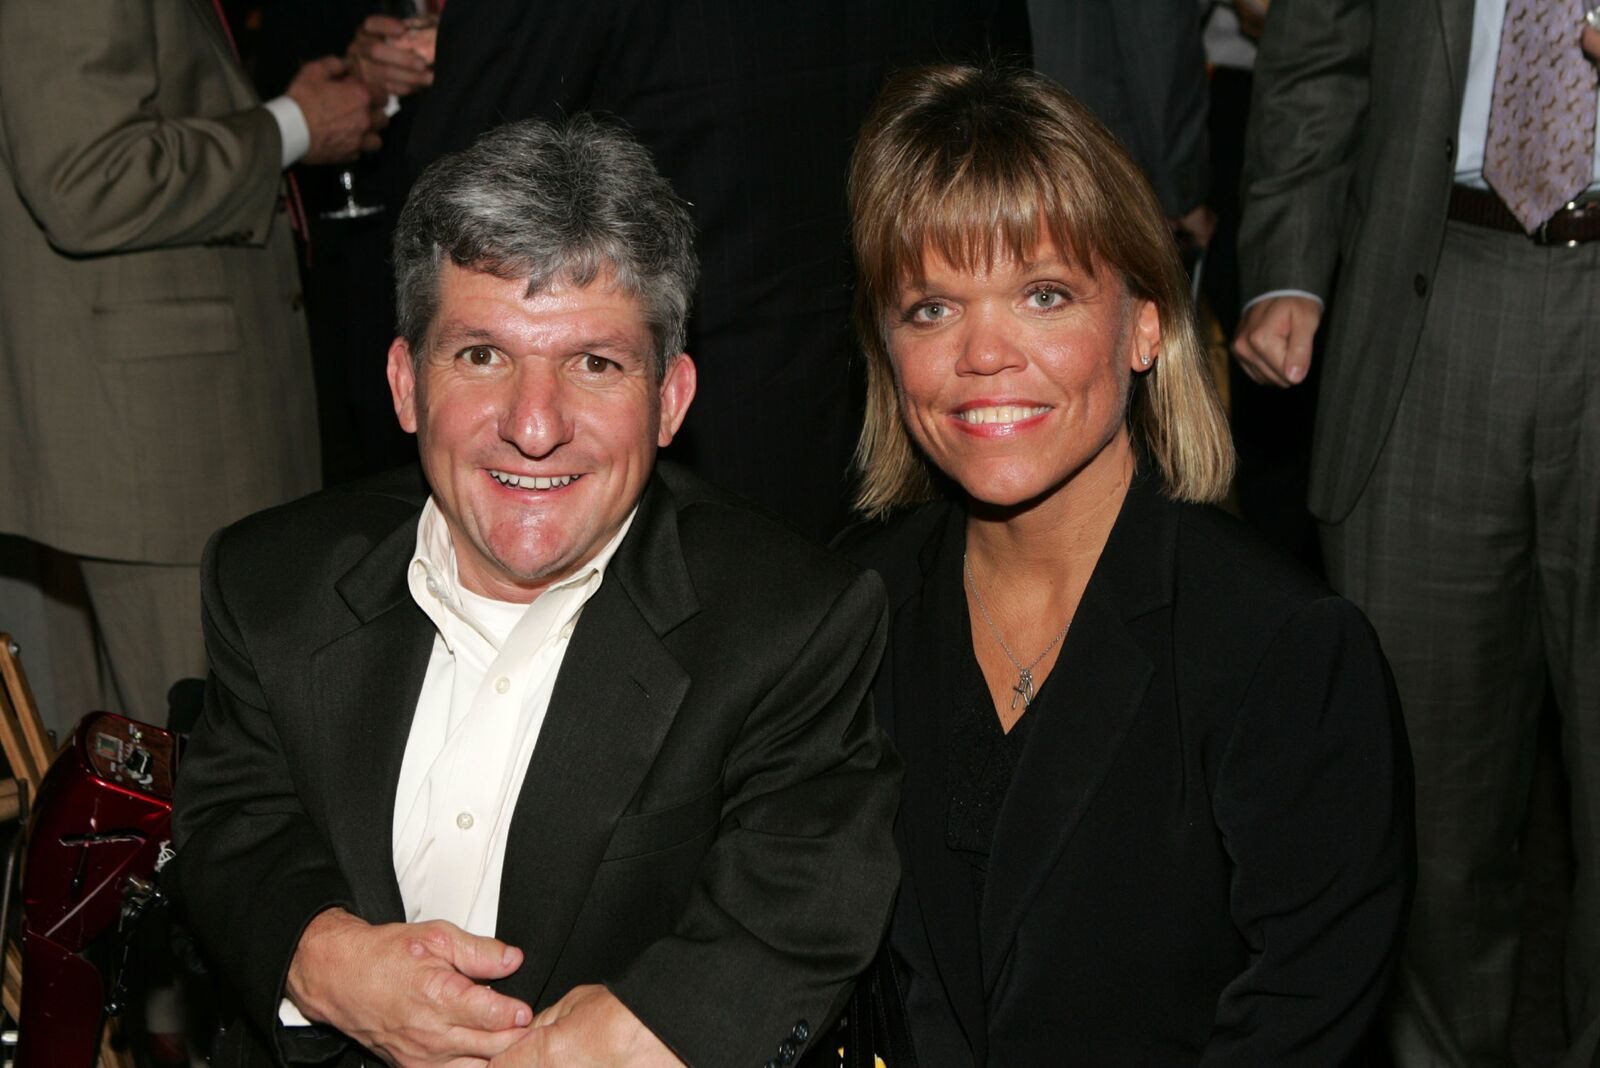 Matt and Amy Roloff attend the Discovery Upfront Presentation NY - Talent Images at the Frederick P. Rose Hall on April 23, 2008. | Photo: Getty Images